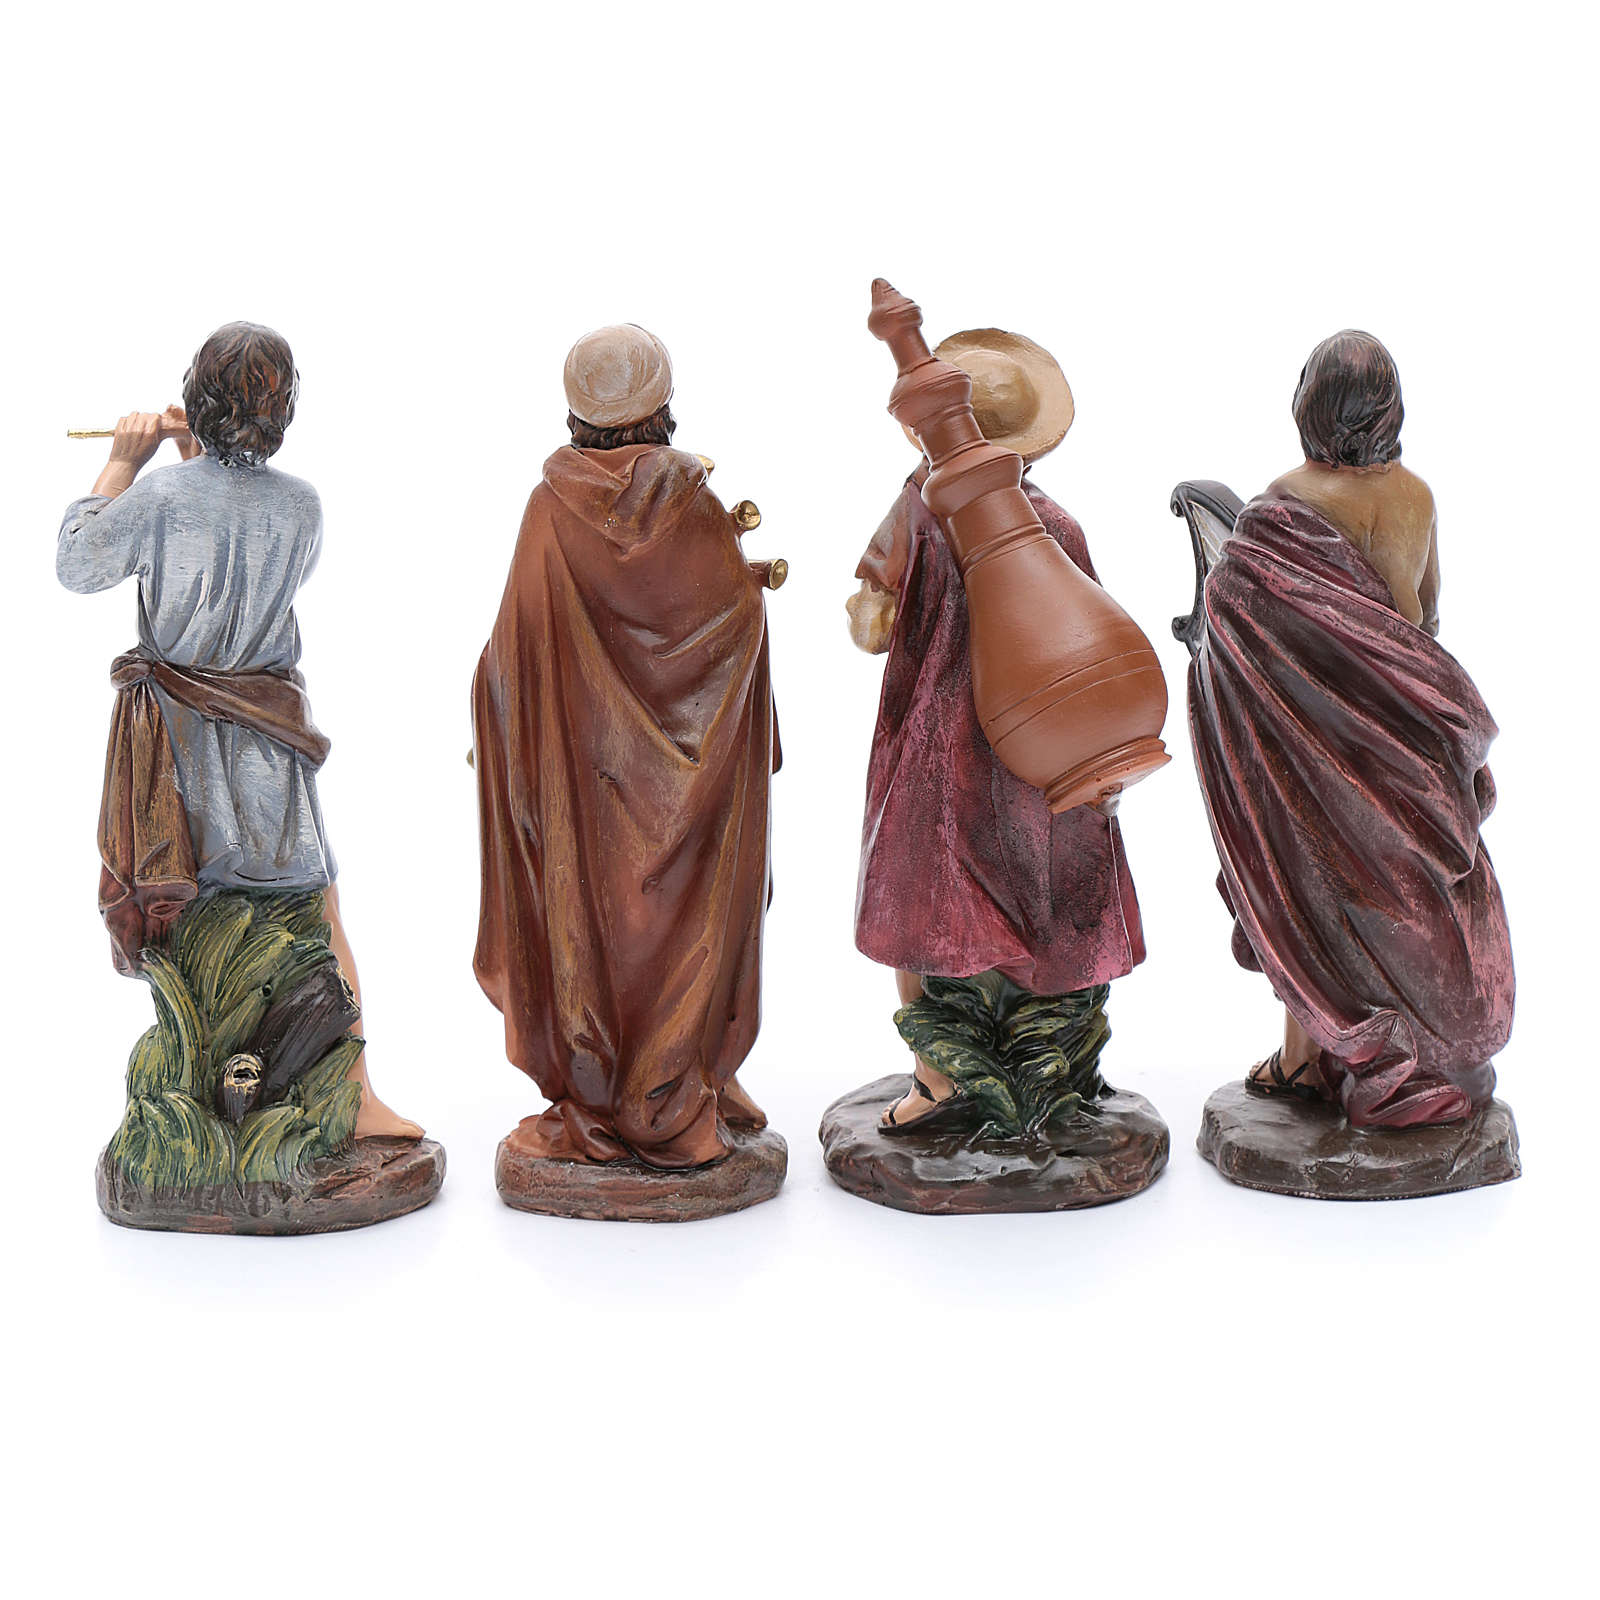 Nativity scene statues bagpipe players 4 pieces set suitable for 10 cm nativity scene 3